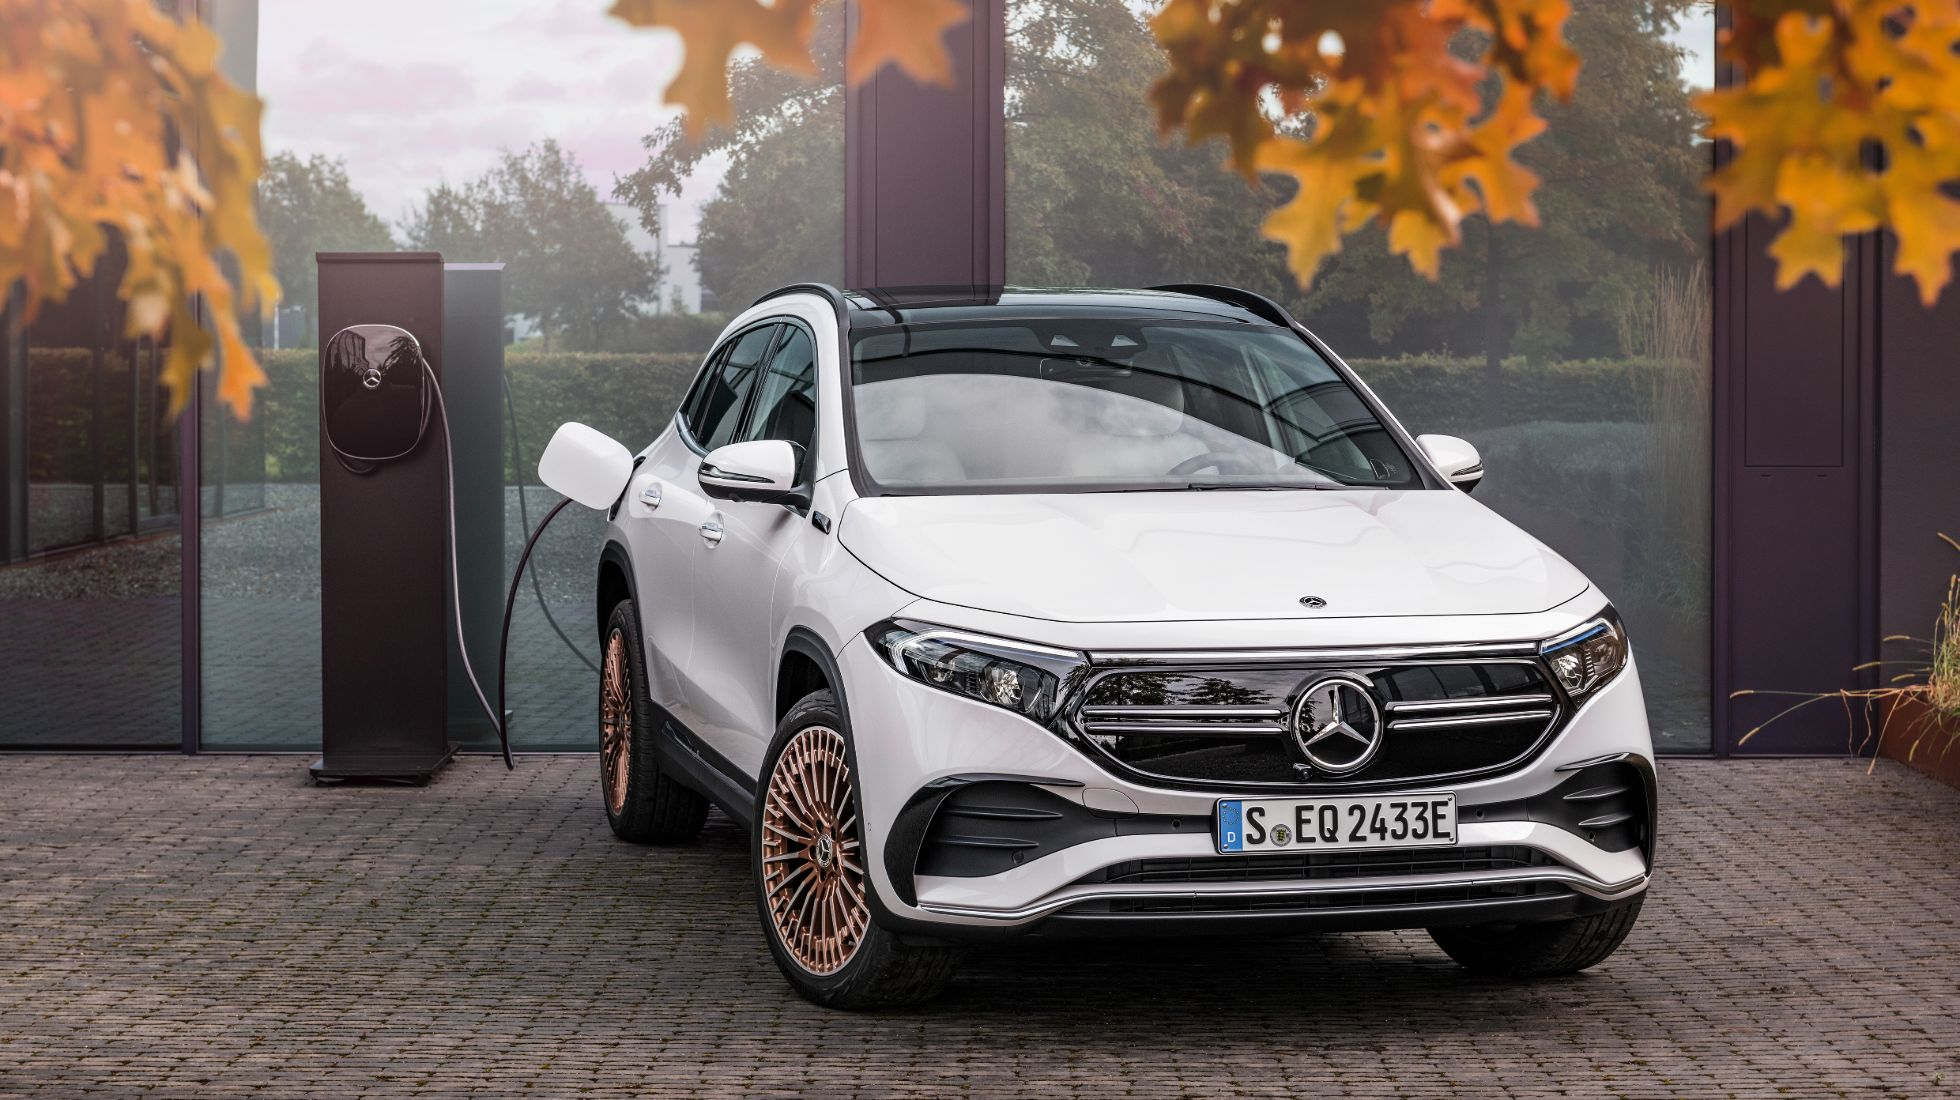 Mercedes-Benz EQA joins the Stuttgart firm's EV product range in 2021